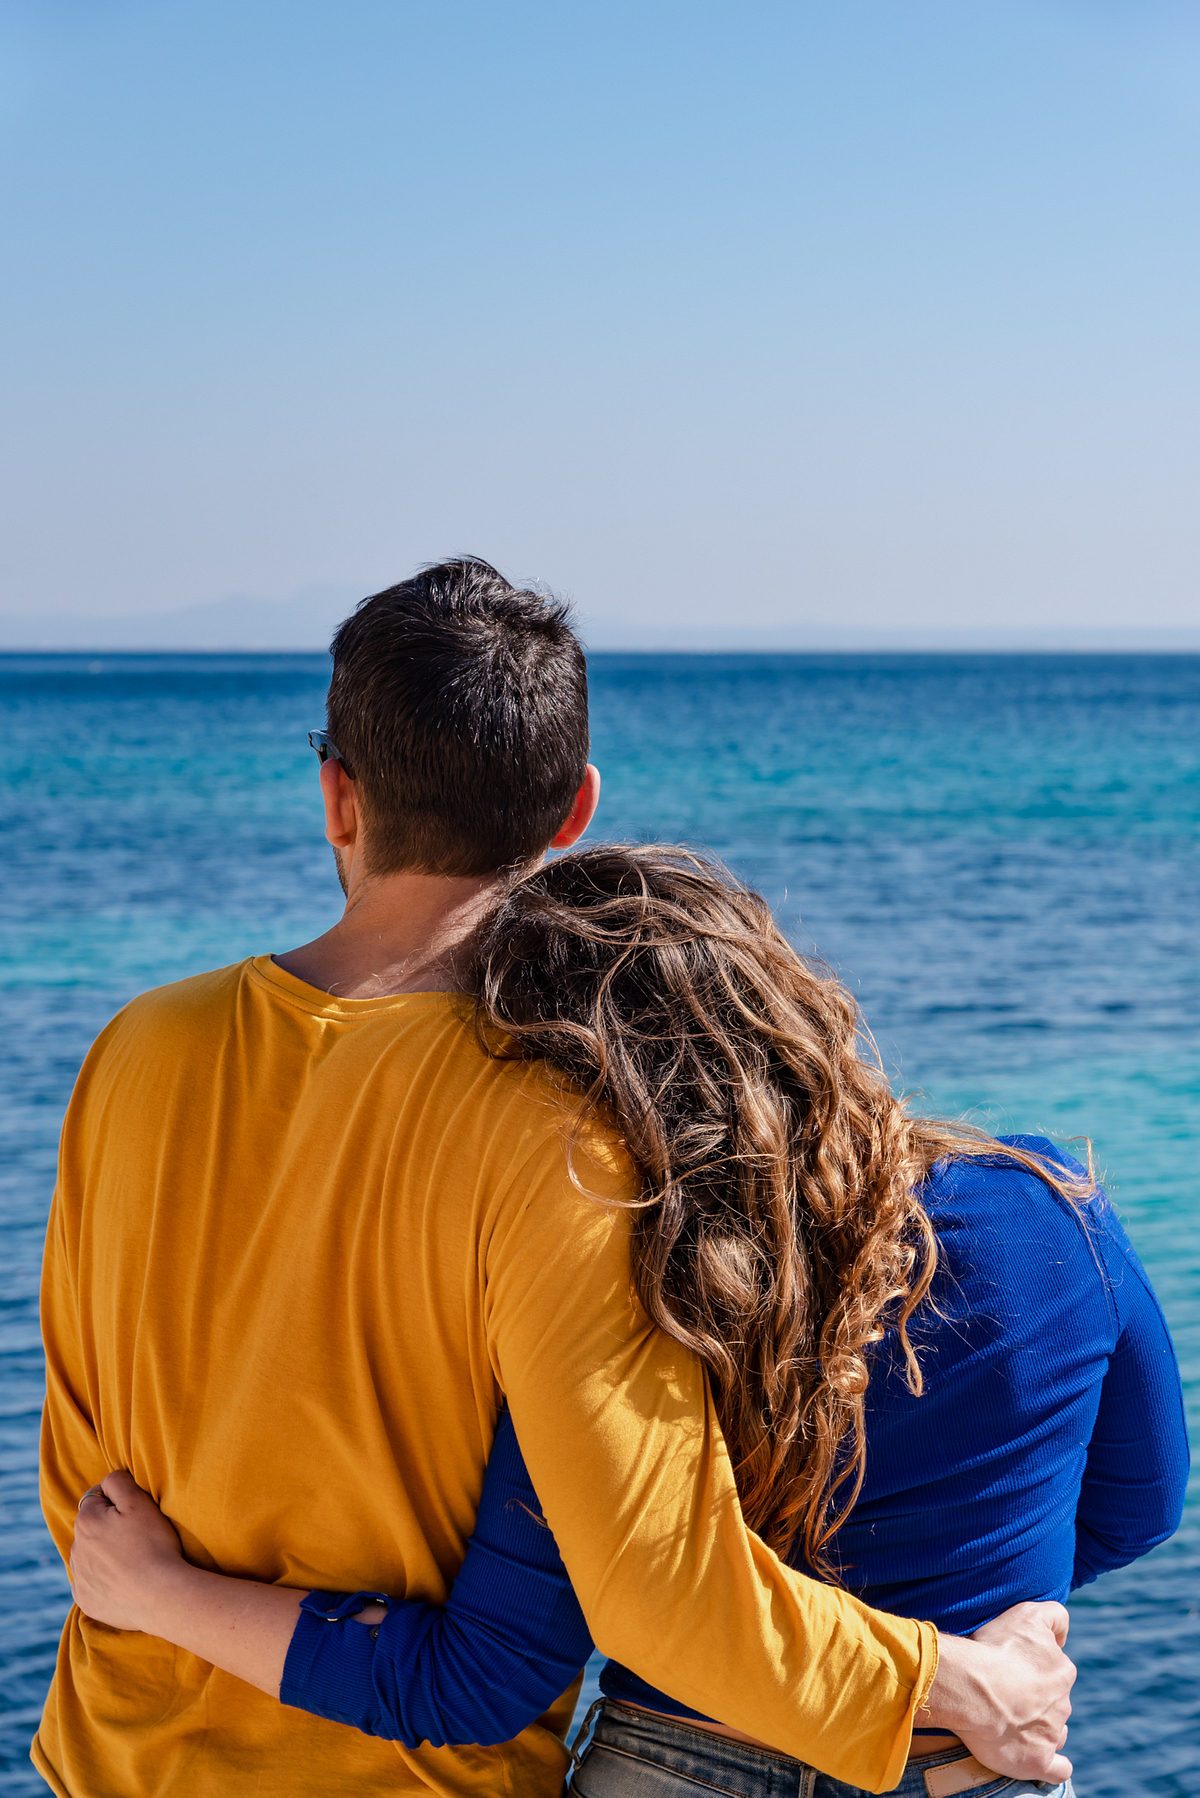 Colourful Love. Couple Photoshoot at the beach. Portal Vells, Calvia, Mallorca